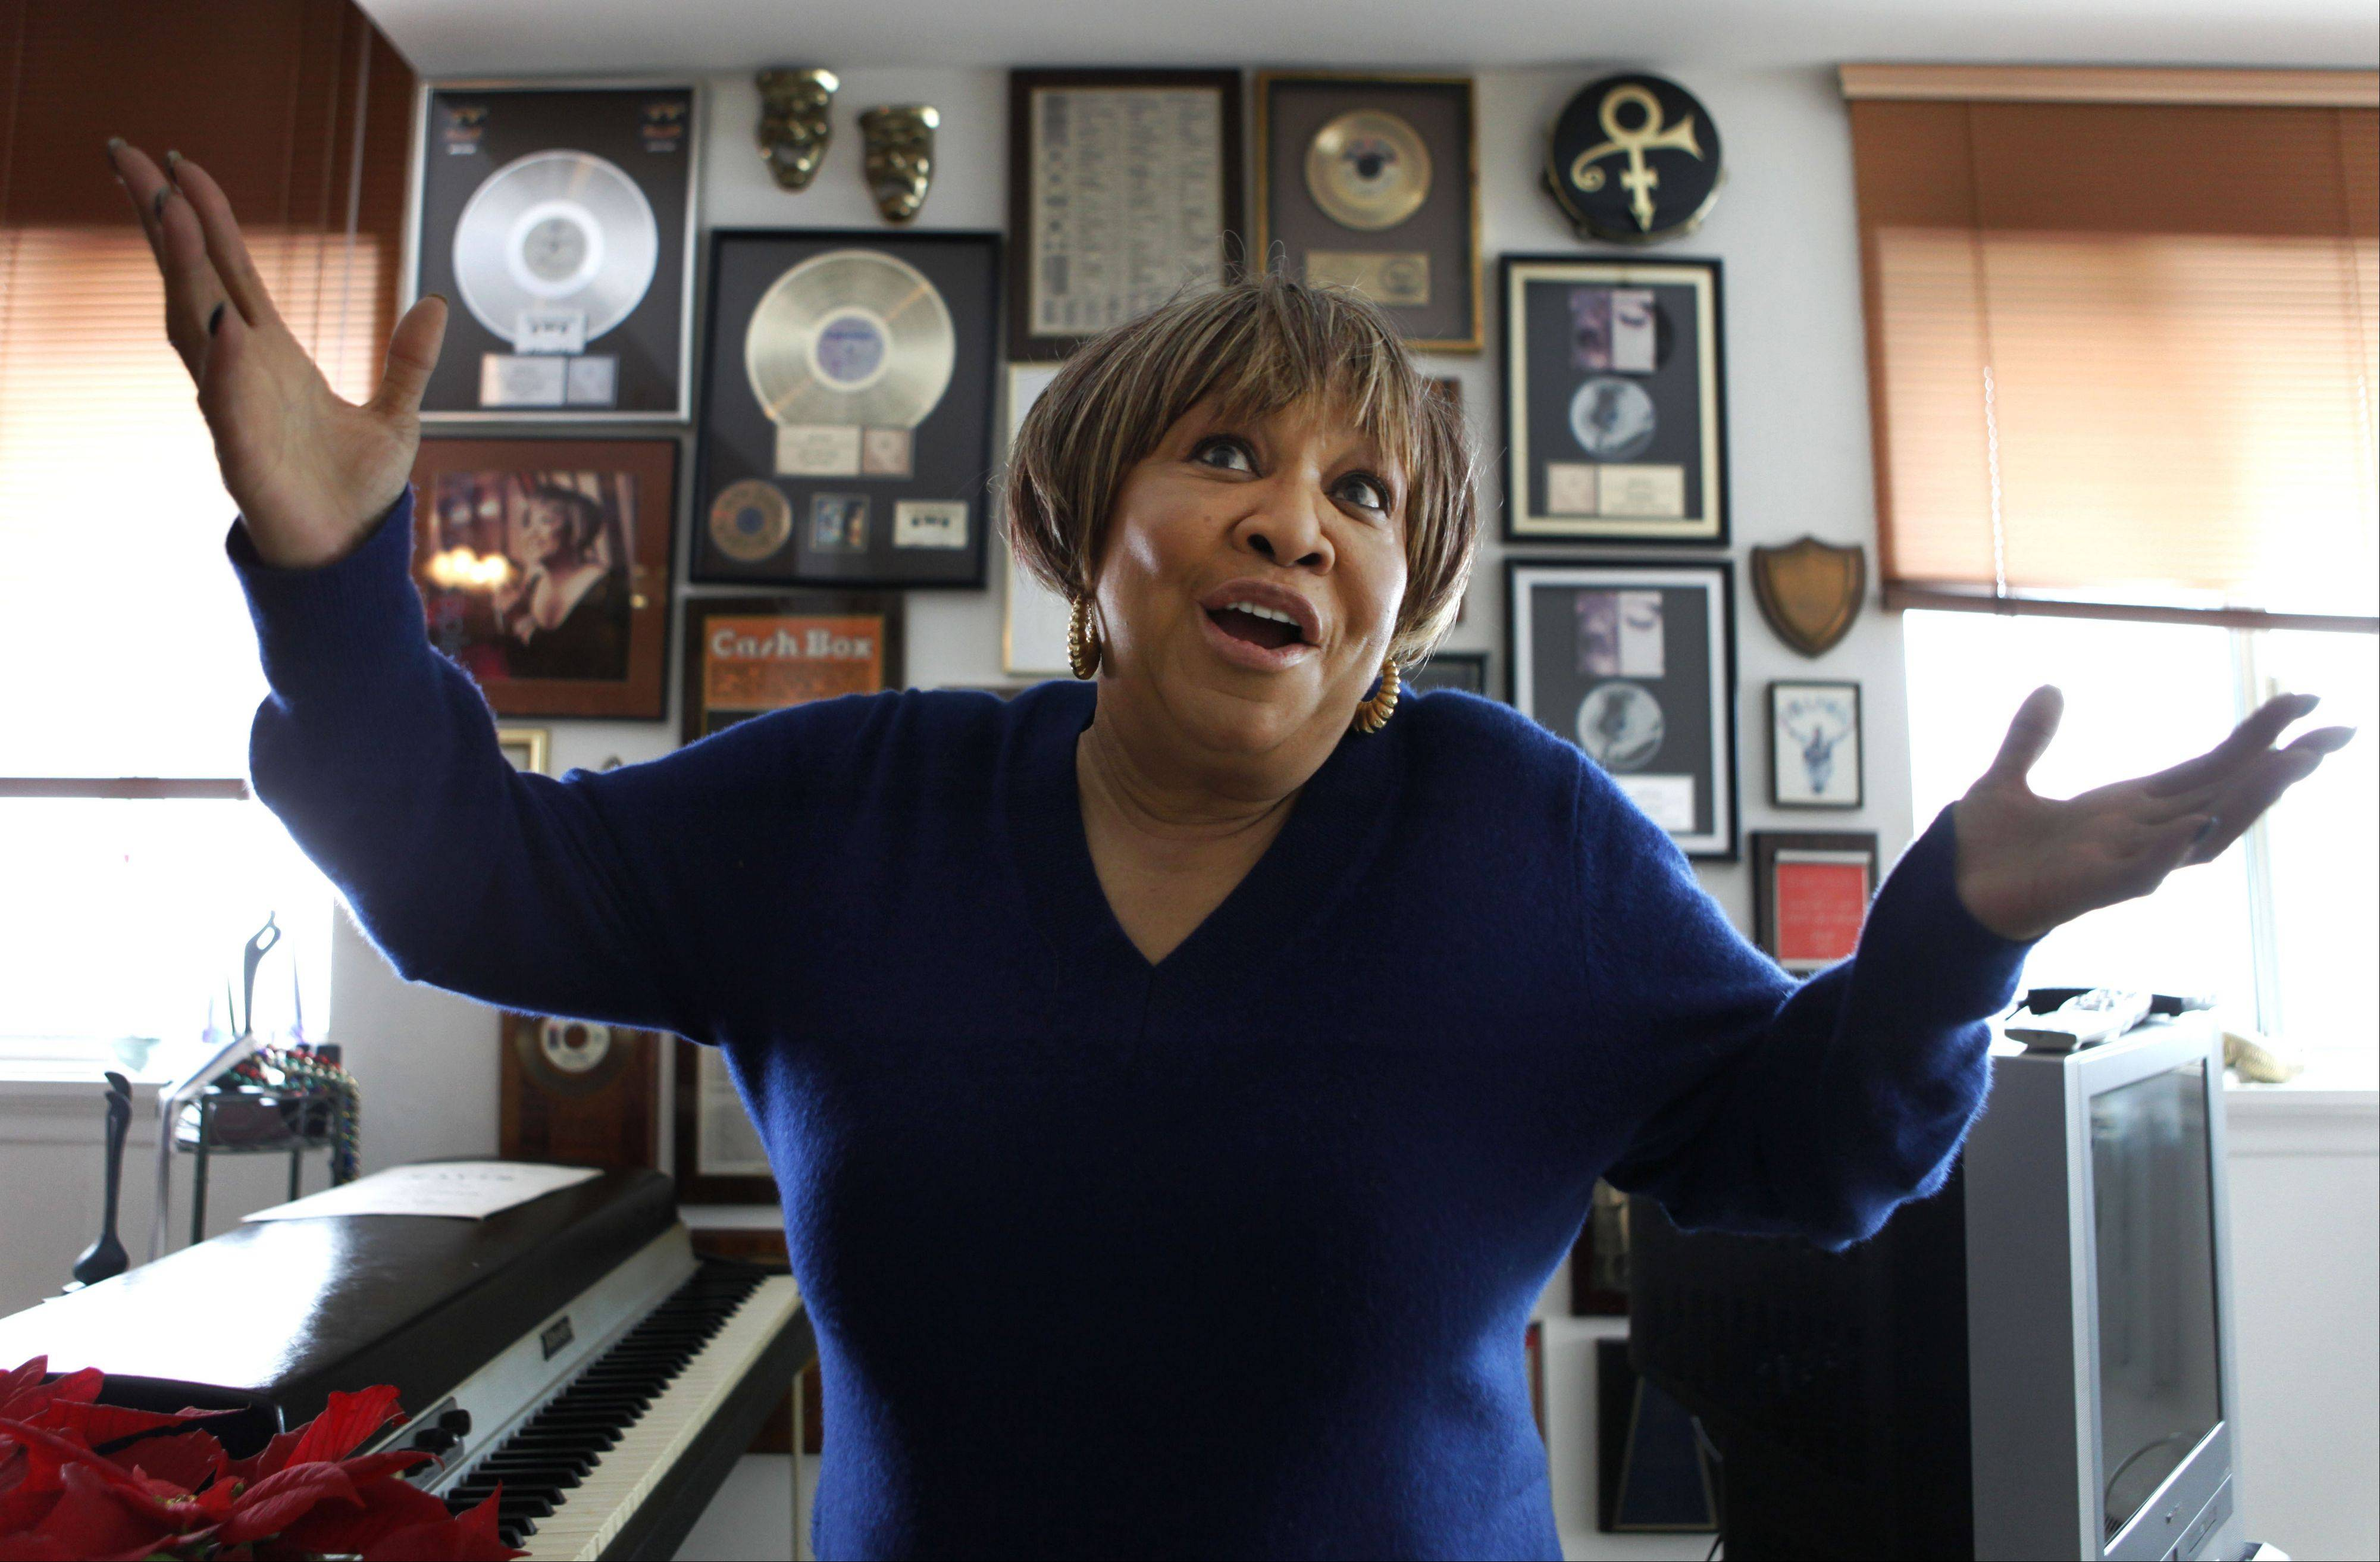 Mavis Staples is the closing headliner of the Chicago Blues Festival in Grant Park on Sunday, June 10.